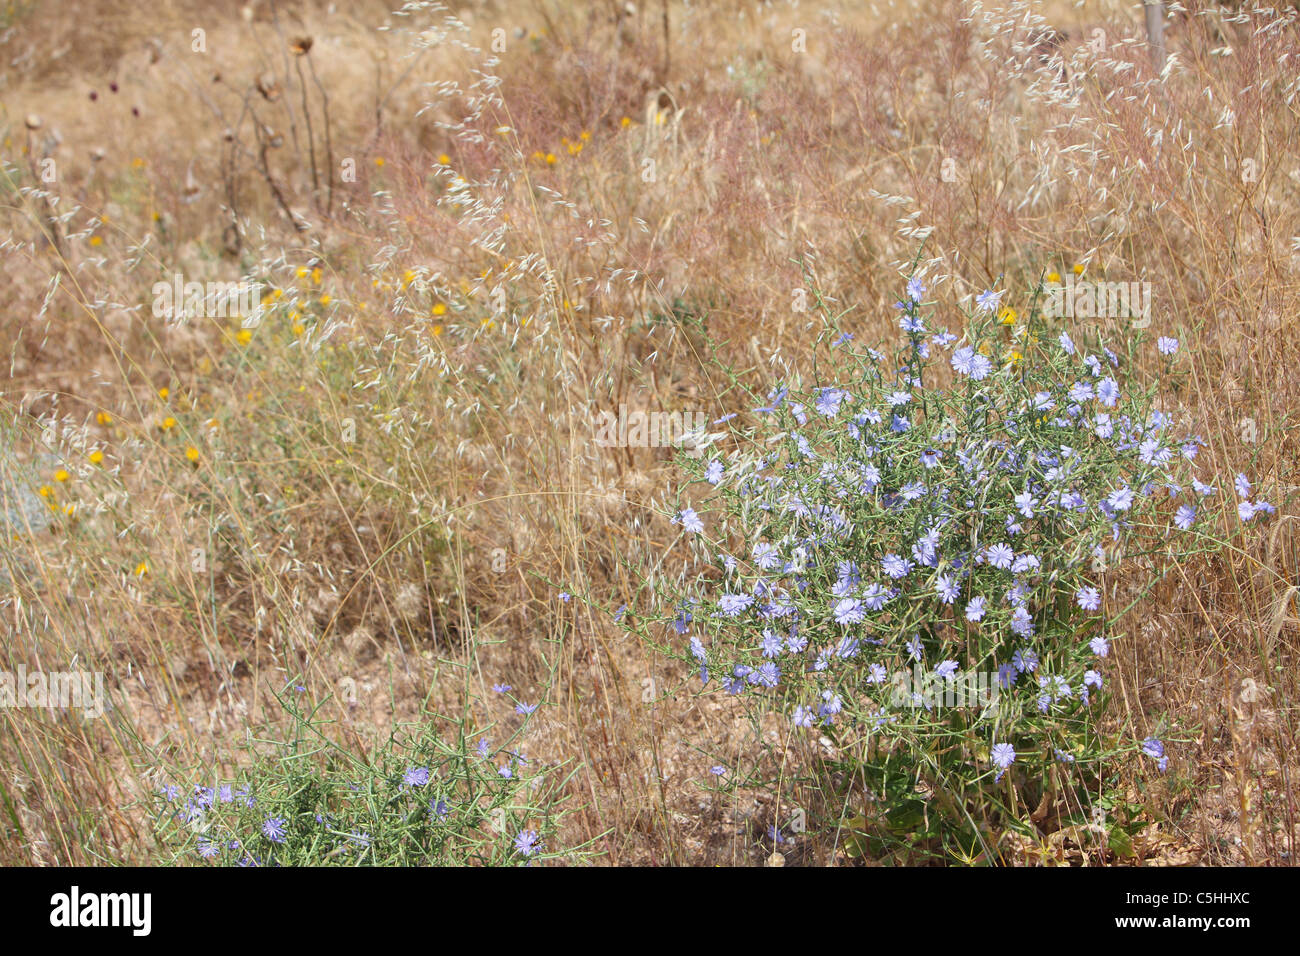 Turkey, Central Anatolia, flowers in summer along road D300 - Stock Image